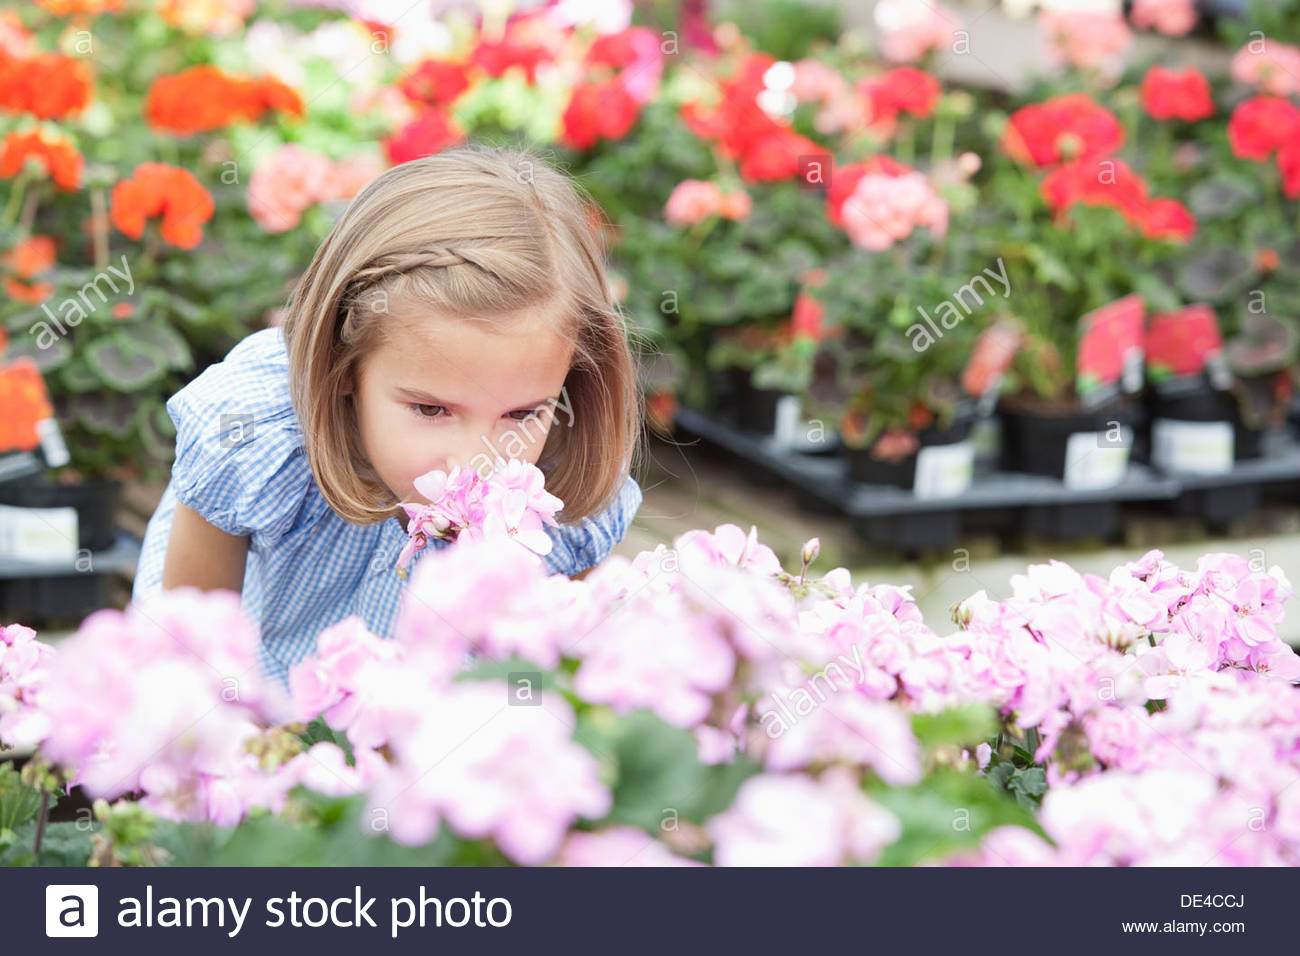 Girl smelling flowers at nursery Stock Photo